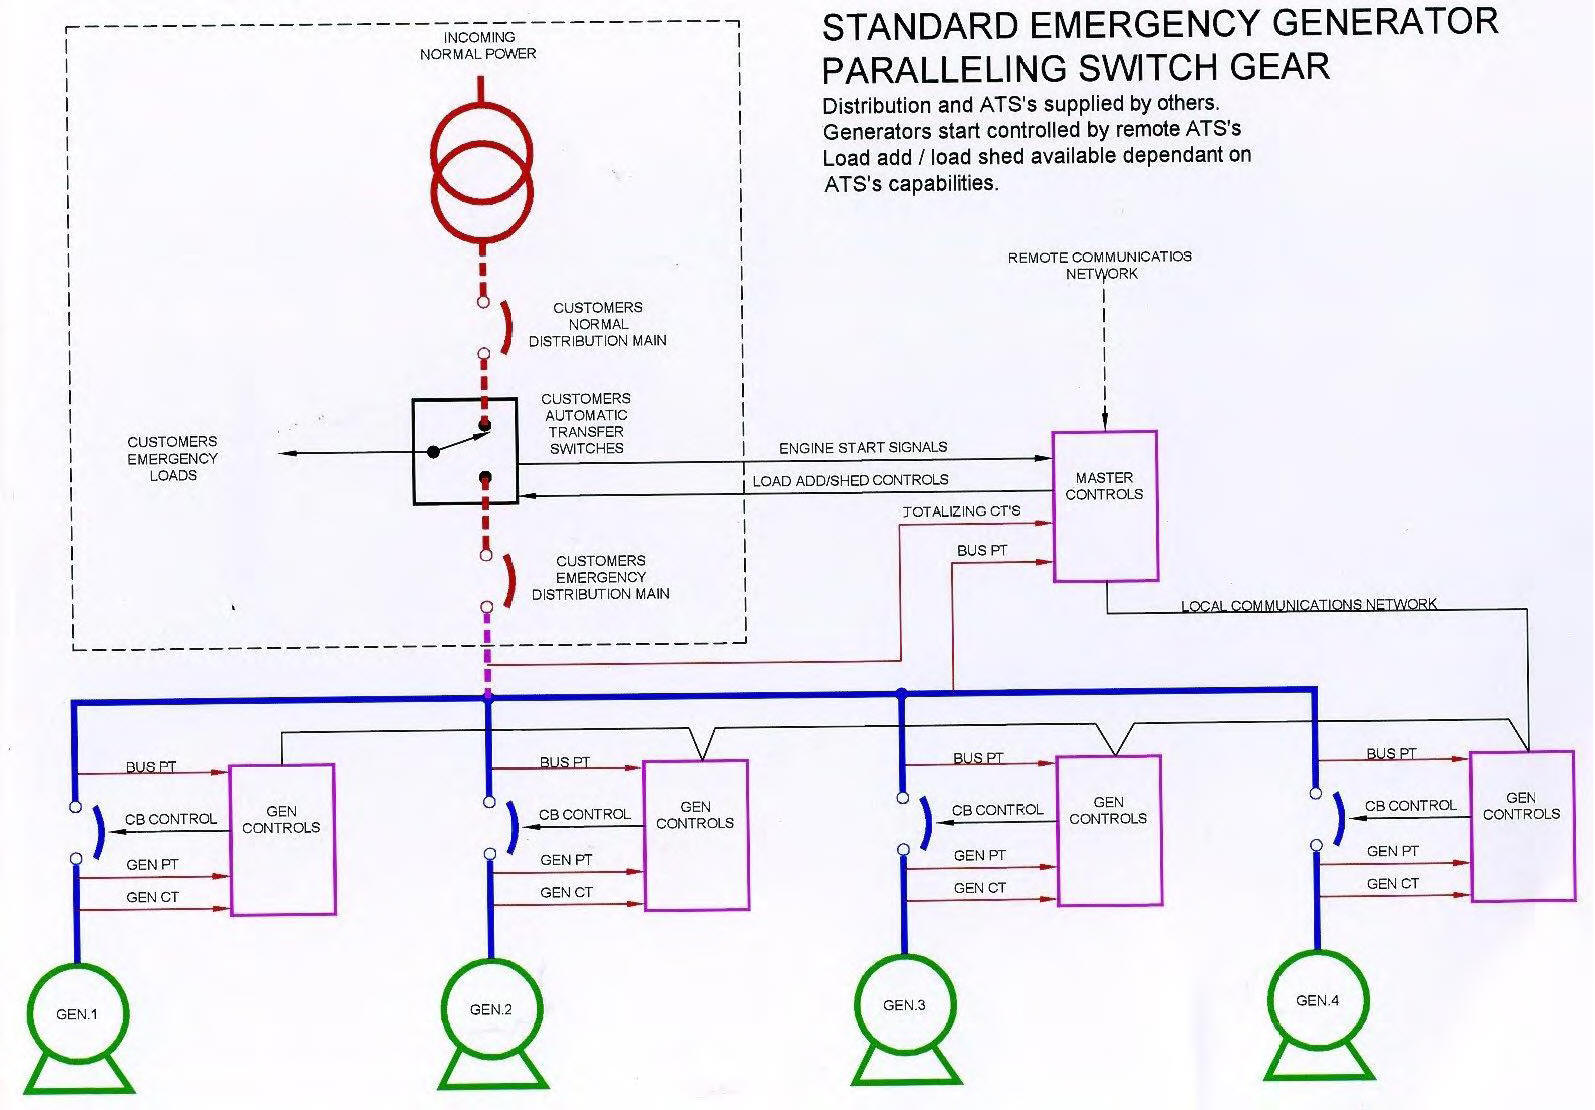 asco 165 wiring diagram speaker how it works for service entrance rated transfer switch